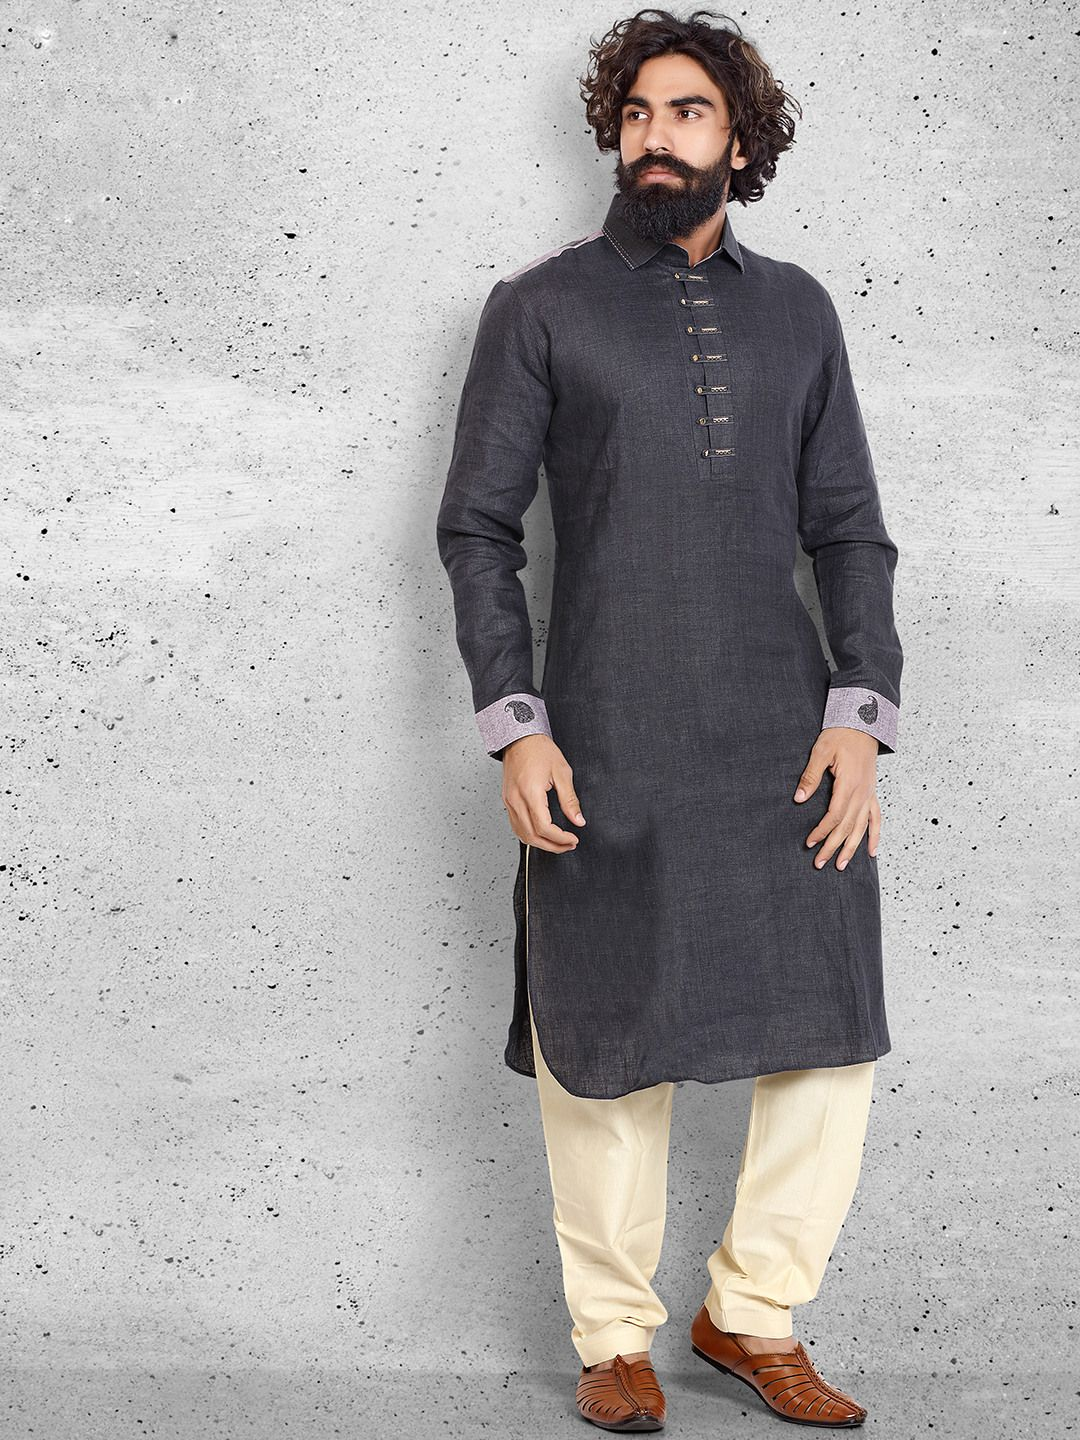 498764b4c Shop Linen cotton black pathani suit online from G3fashion India. Brand -  G3, Product